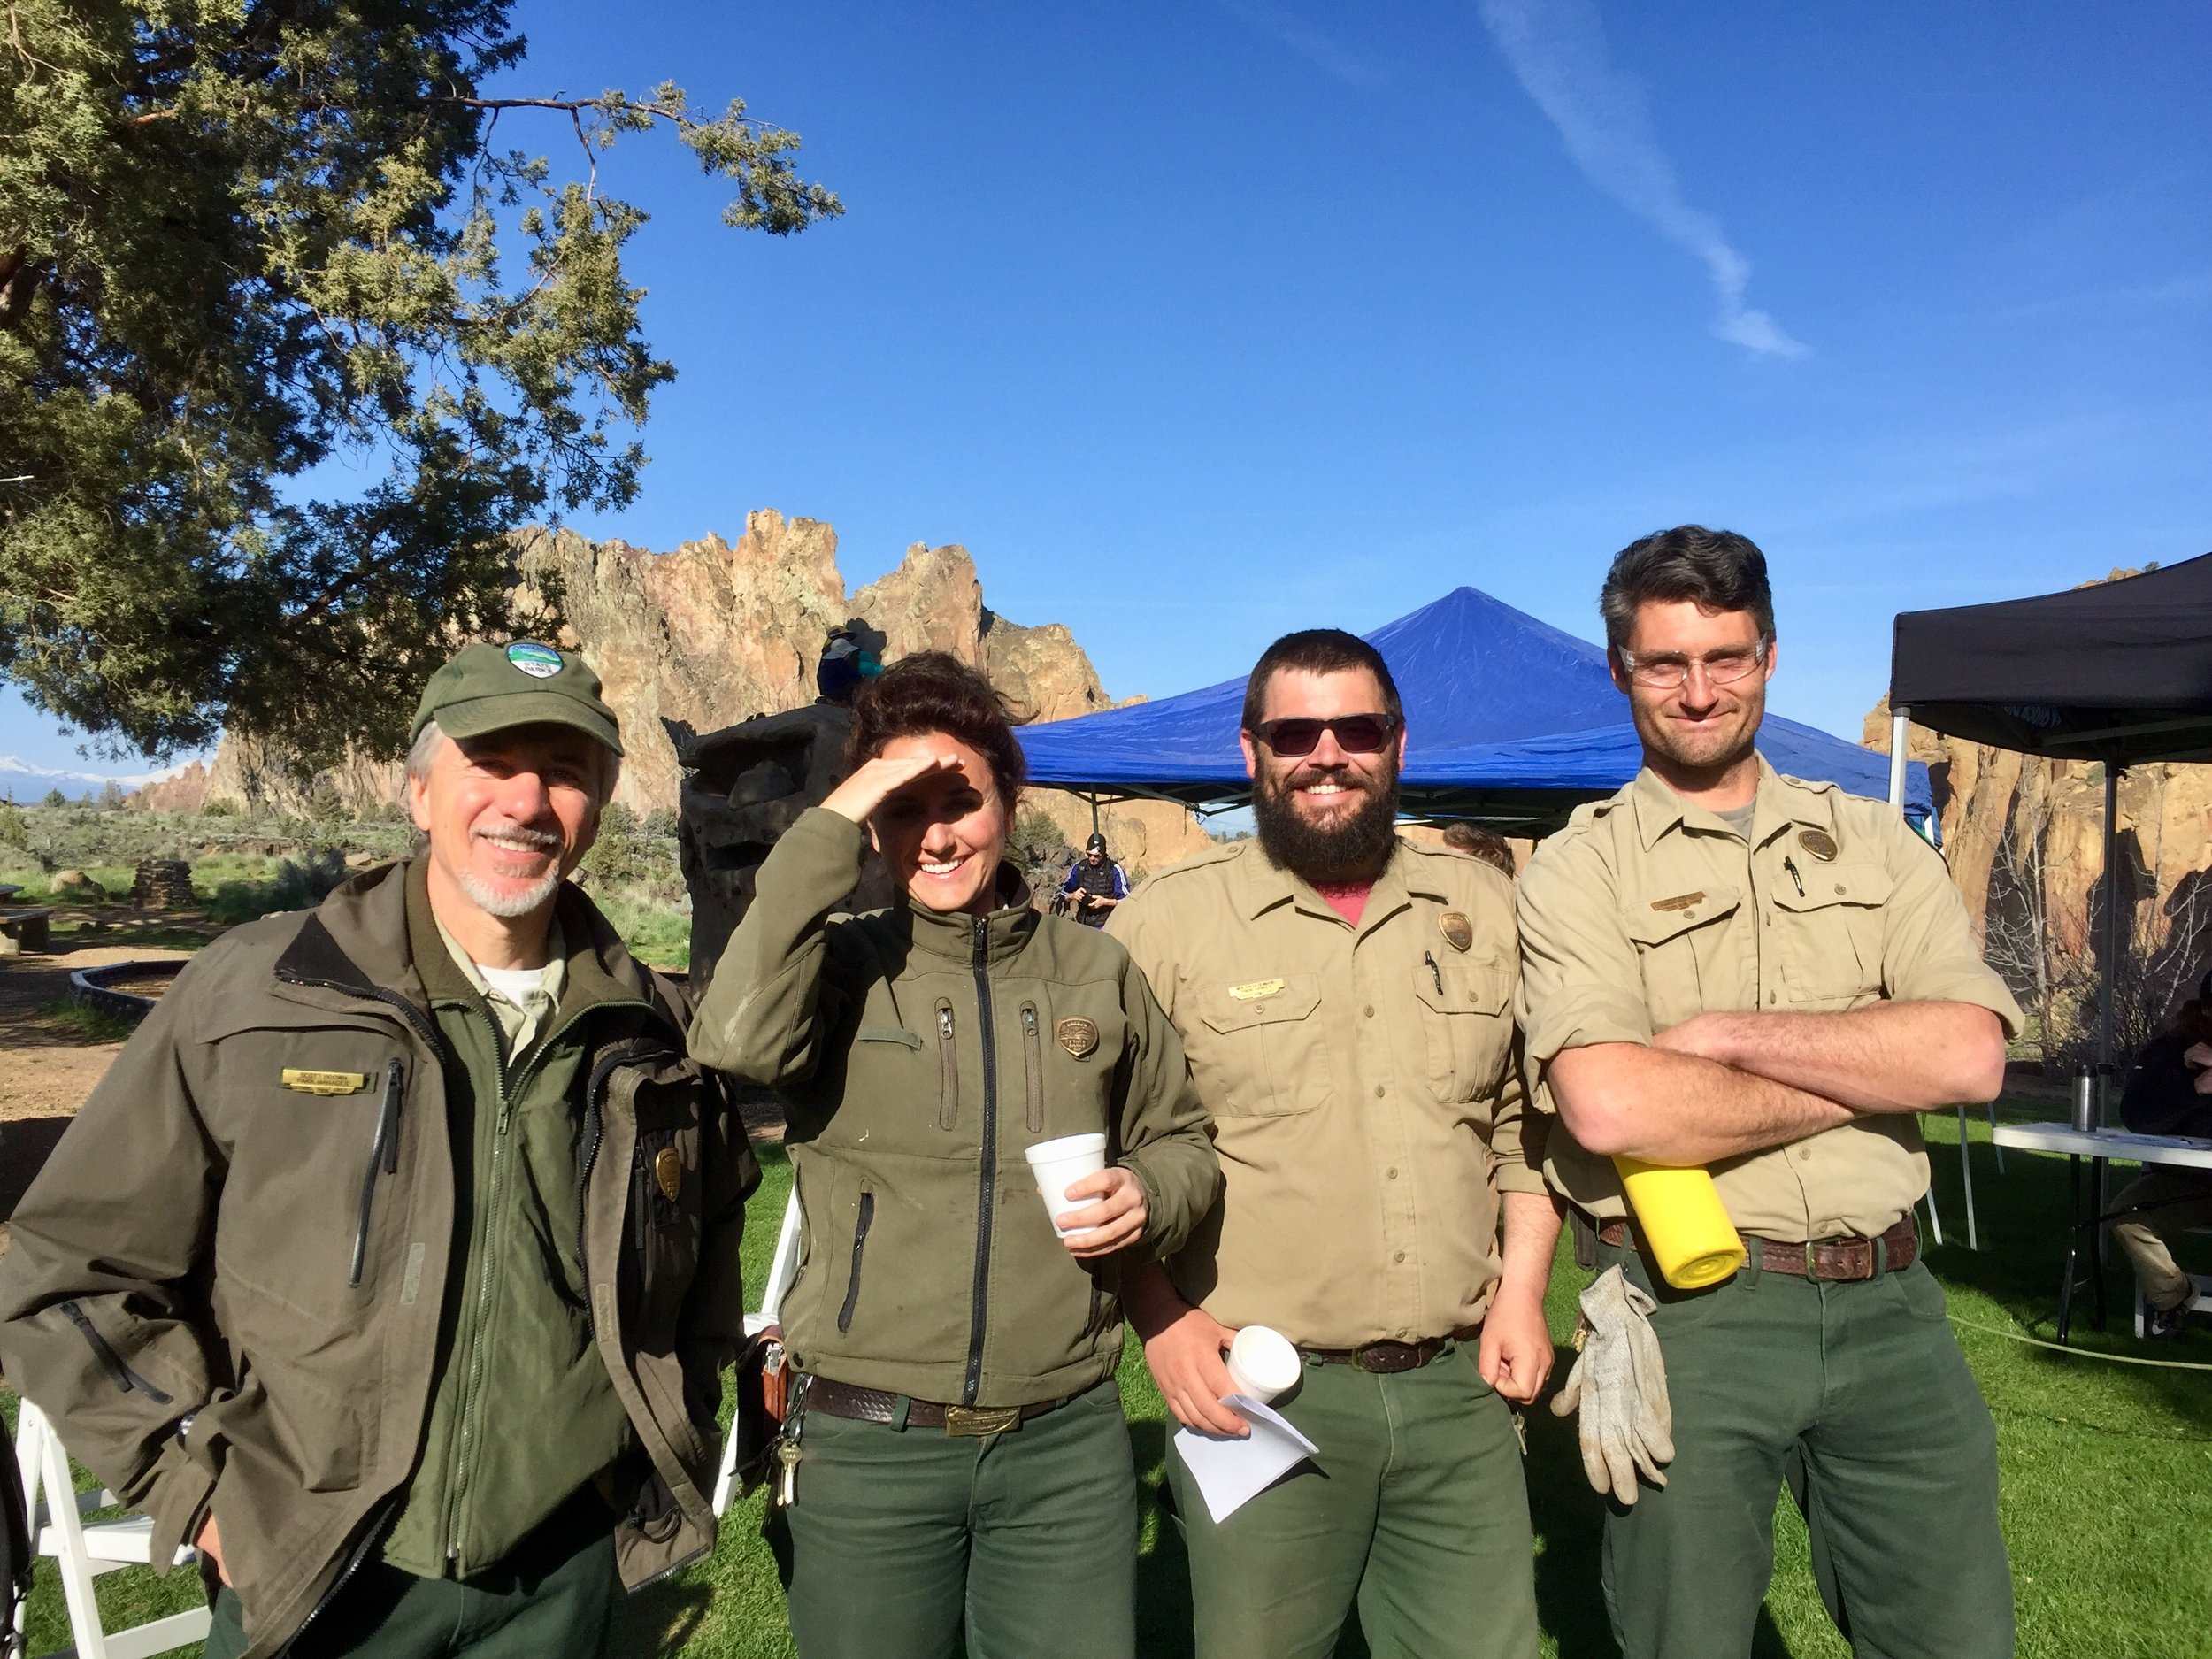 From left to right, Park Manager Scott Brown, Ranger Josie Barnum, Ranger Nolan Ferdinand, and Park Ranger Assistant Patrick Tinsley at this year's Smith Rock Spring Thing volunteer day.